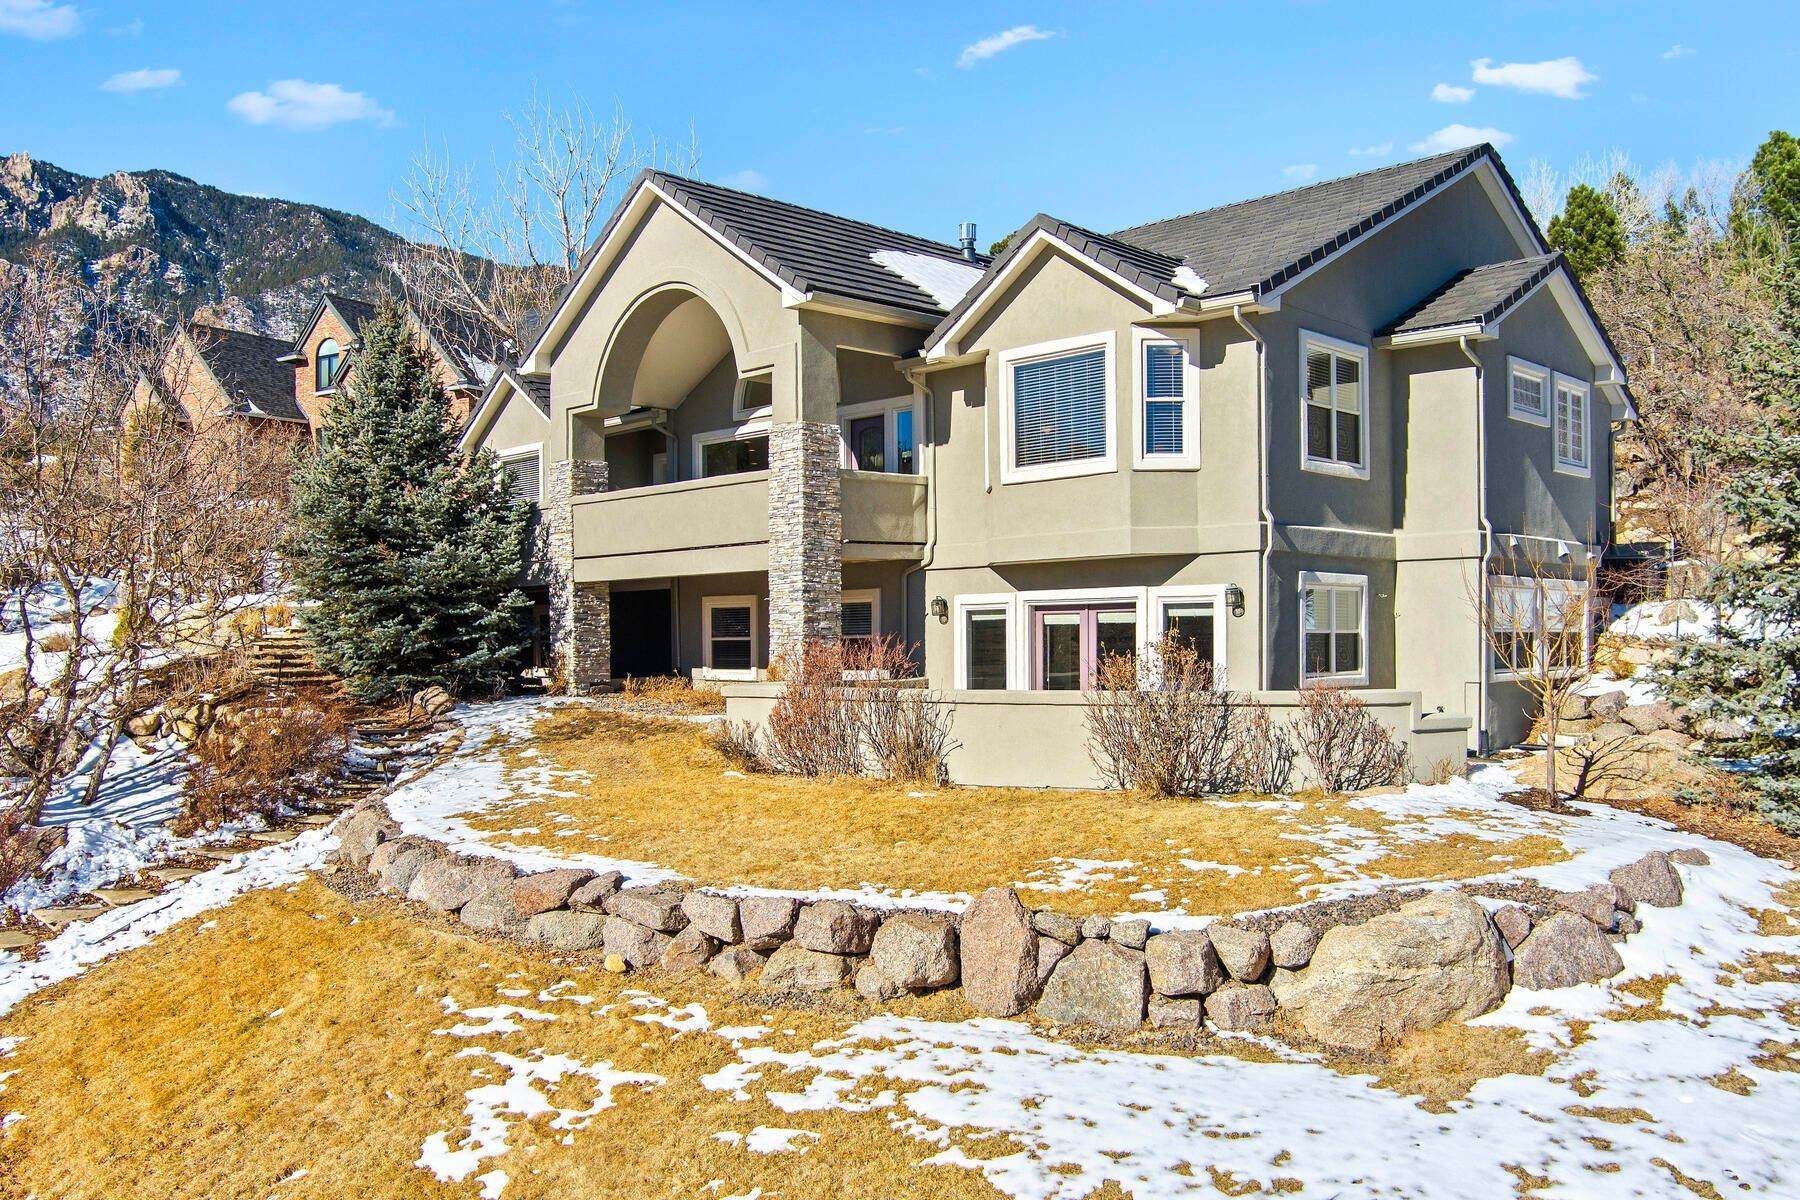 Property en 240 Haversham Drive, Colorado Springs, Co, 80906 240 Haversham Drive Colorado Springs, Colorado 80906 Estados Unidos